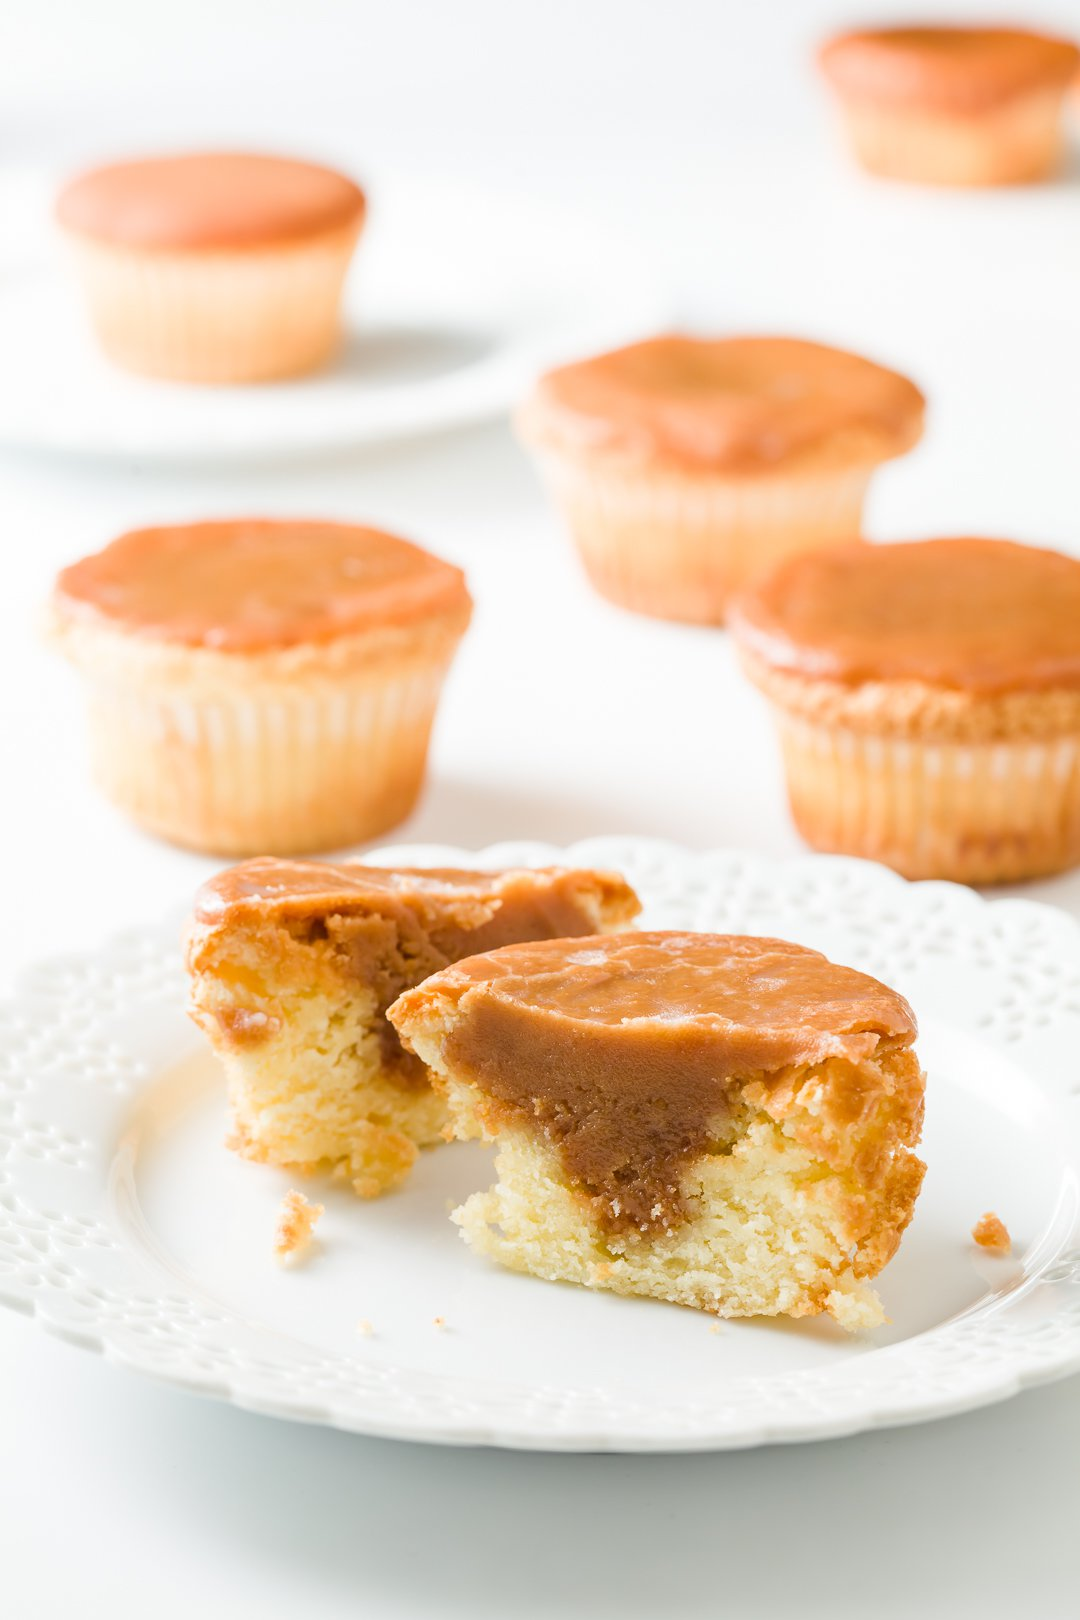 Cupcakes with caramel inside and on top